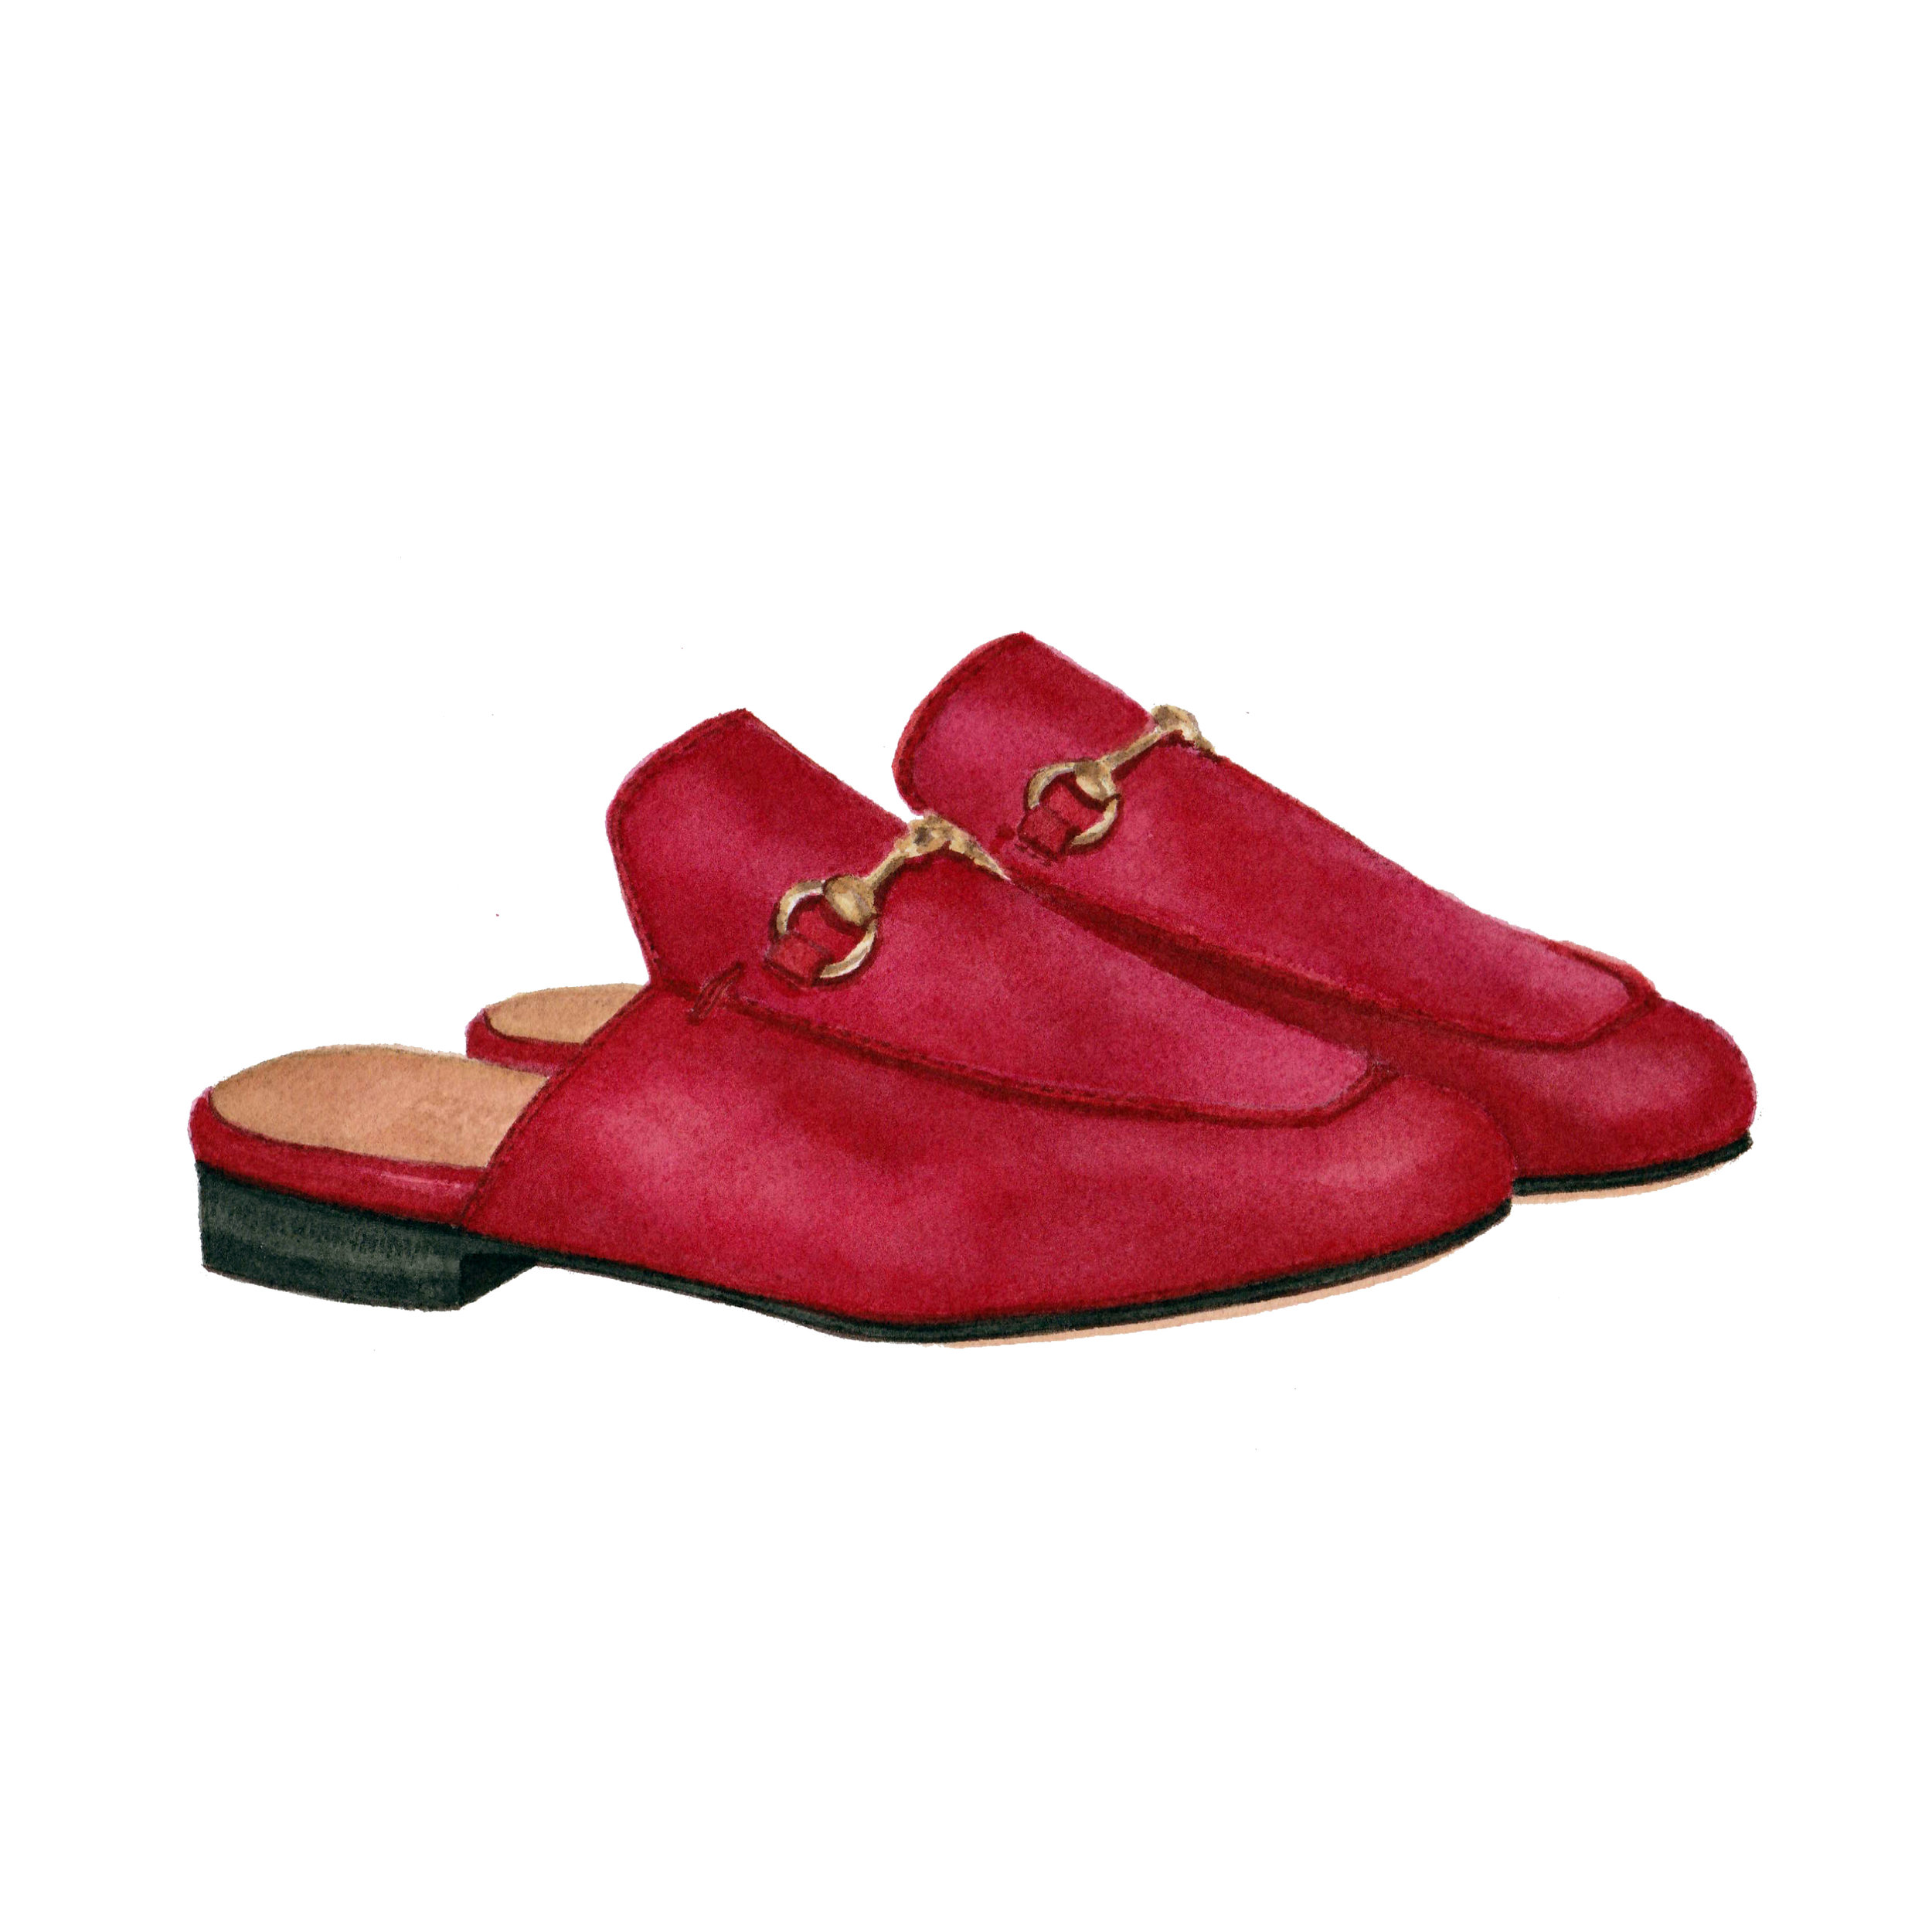 Gucci Princetown Slides in Hibiscus Red